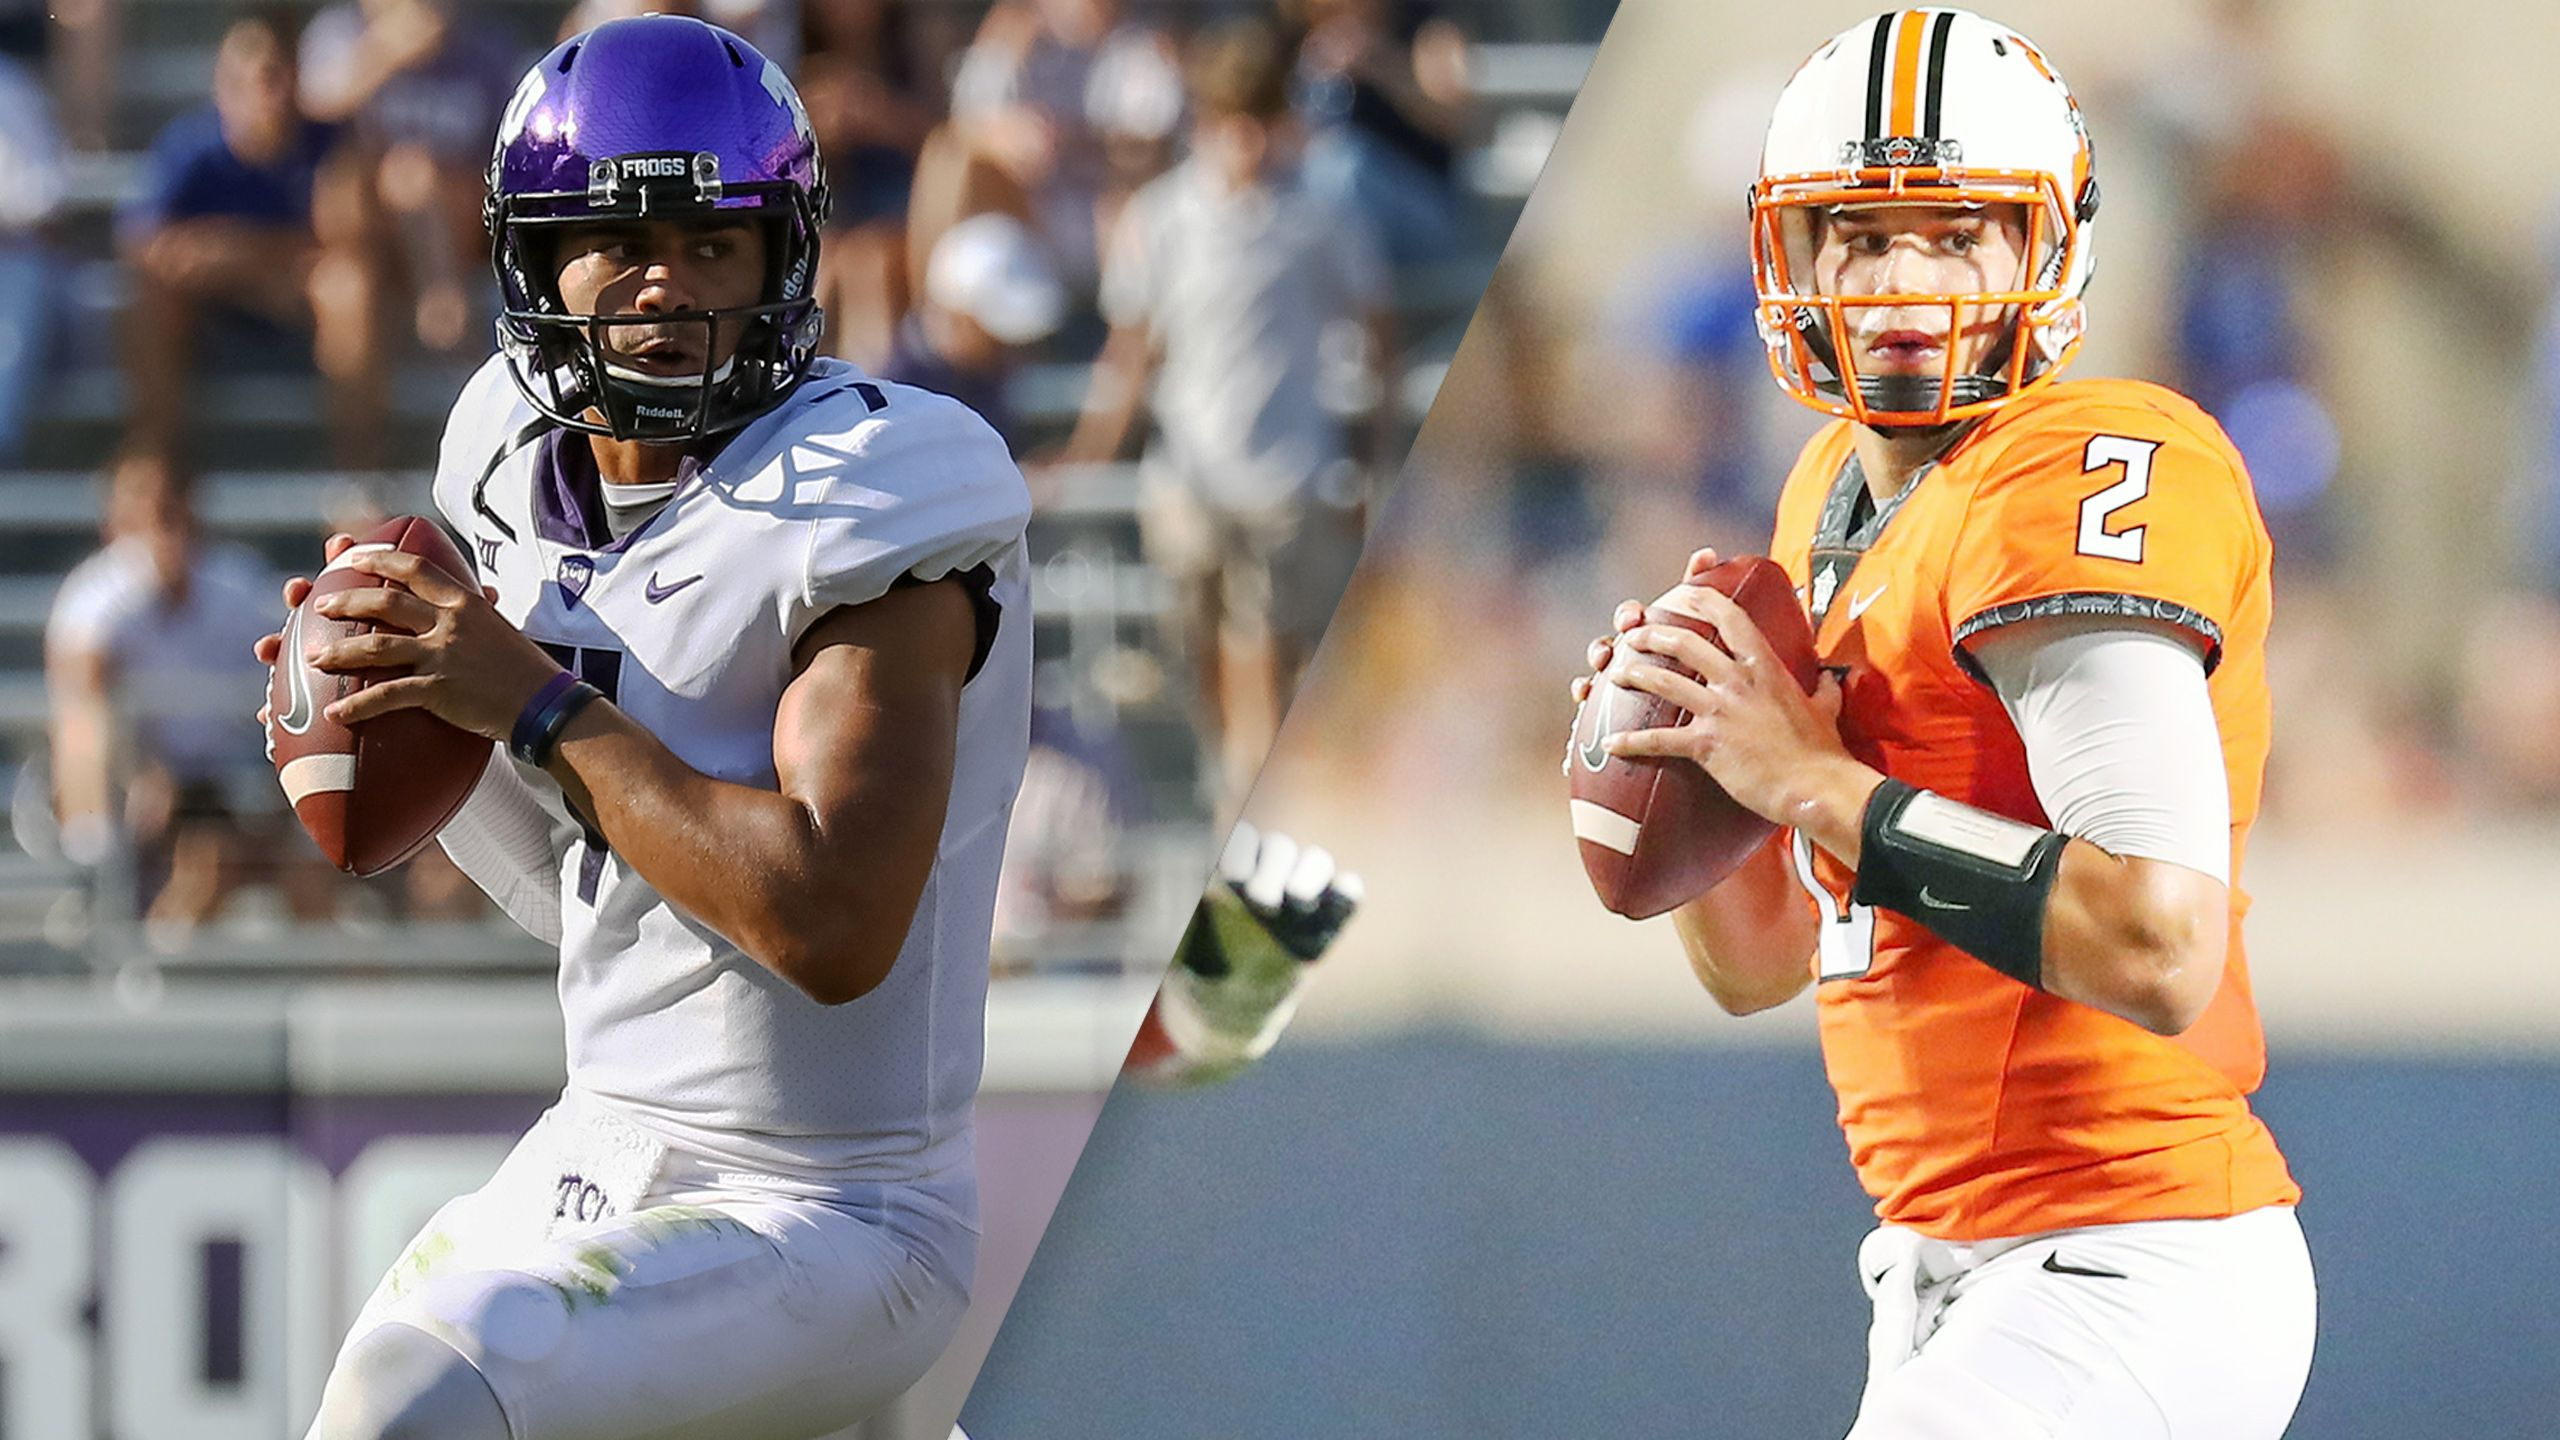 #16 TCU vs. #6 Oklahoma State (Football)